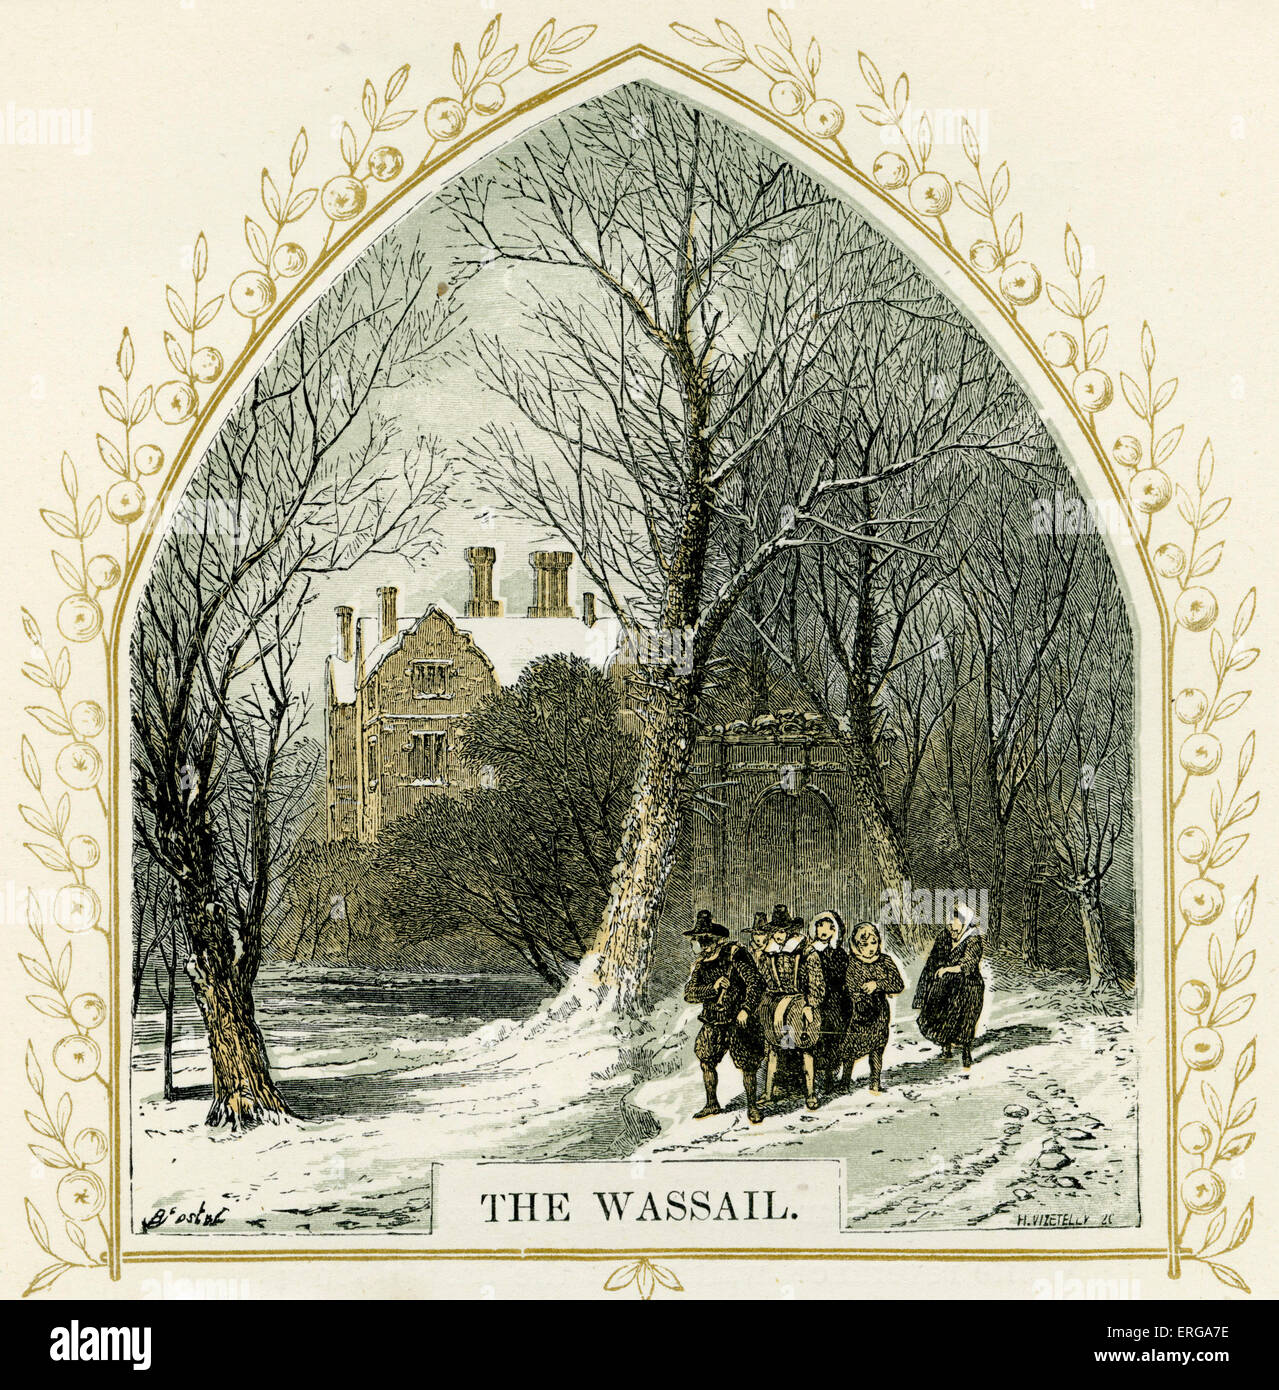 The Wassail - illustration by Birket Foster, 1872. Wassail is an English mulled punch associated with Yuletide. - Stock Image